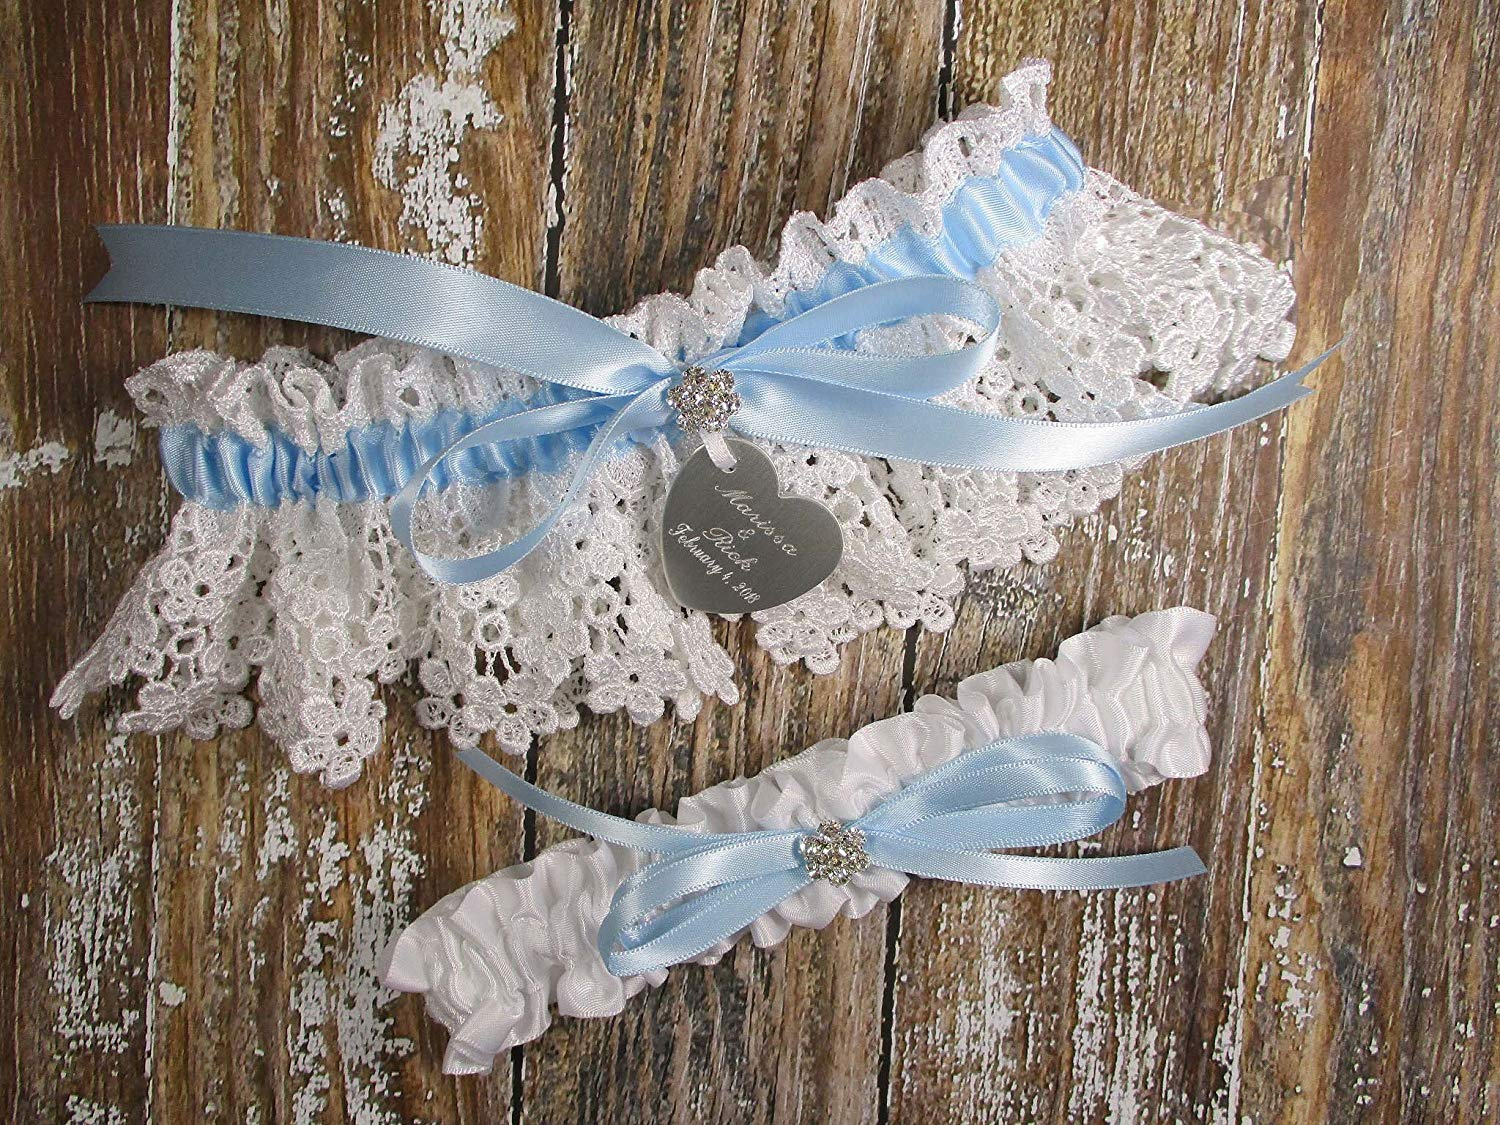 b6863ce33 Get Quotations · White Lace and Something Blue Wedding Garter Set with Personalized  Engraving